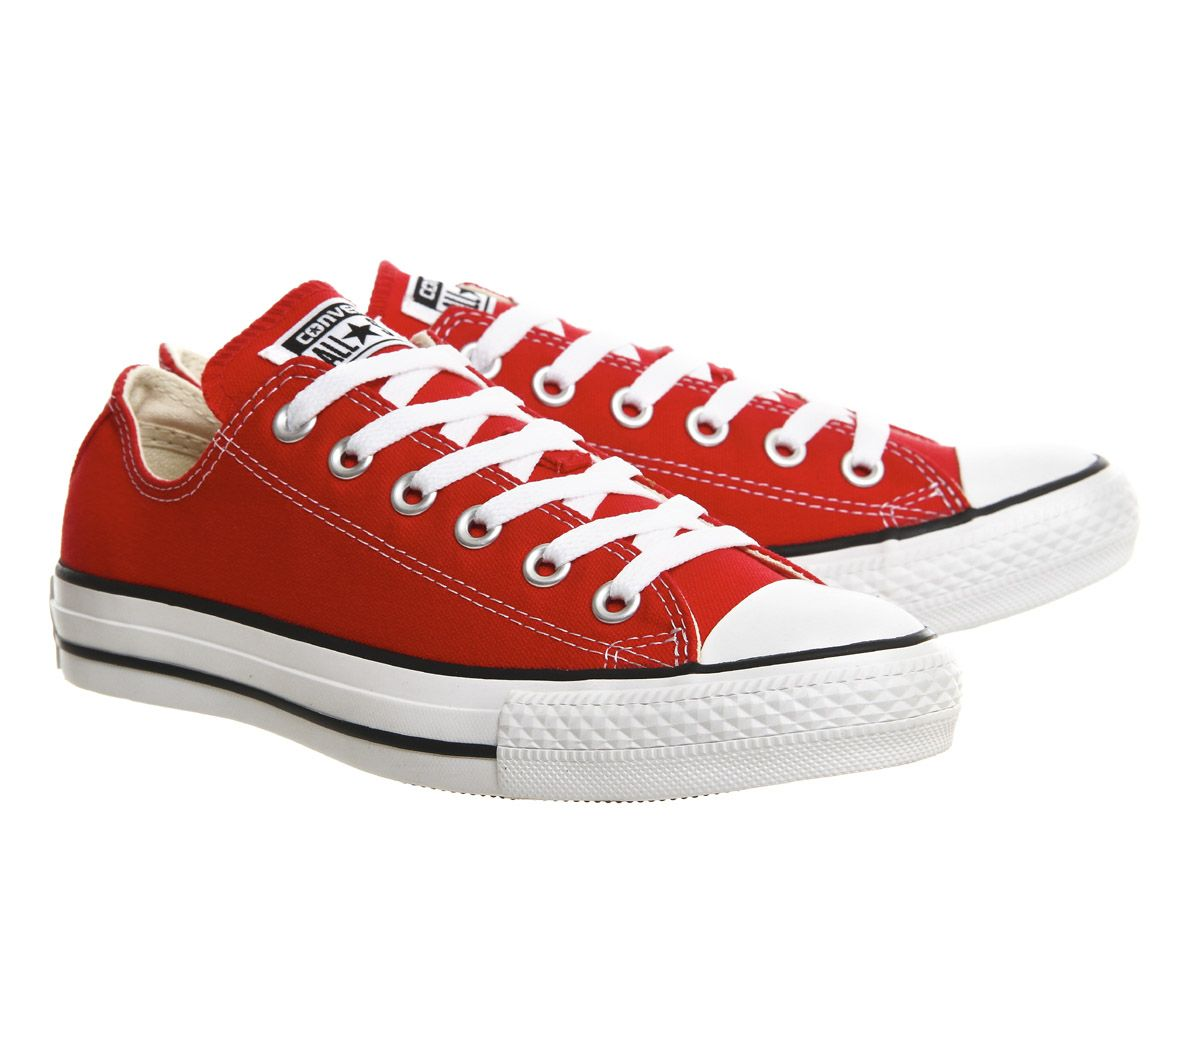 dbac8c26228 Sentinel Mens Converse All Star Low Red Canvas Trainers Shoes